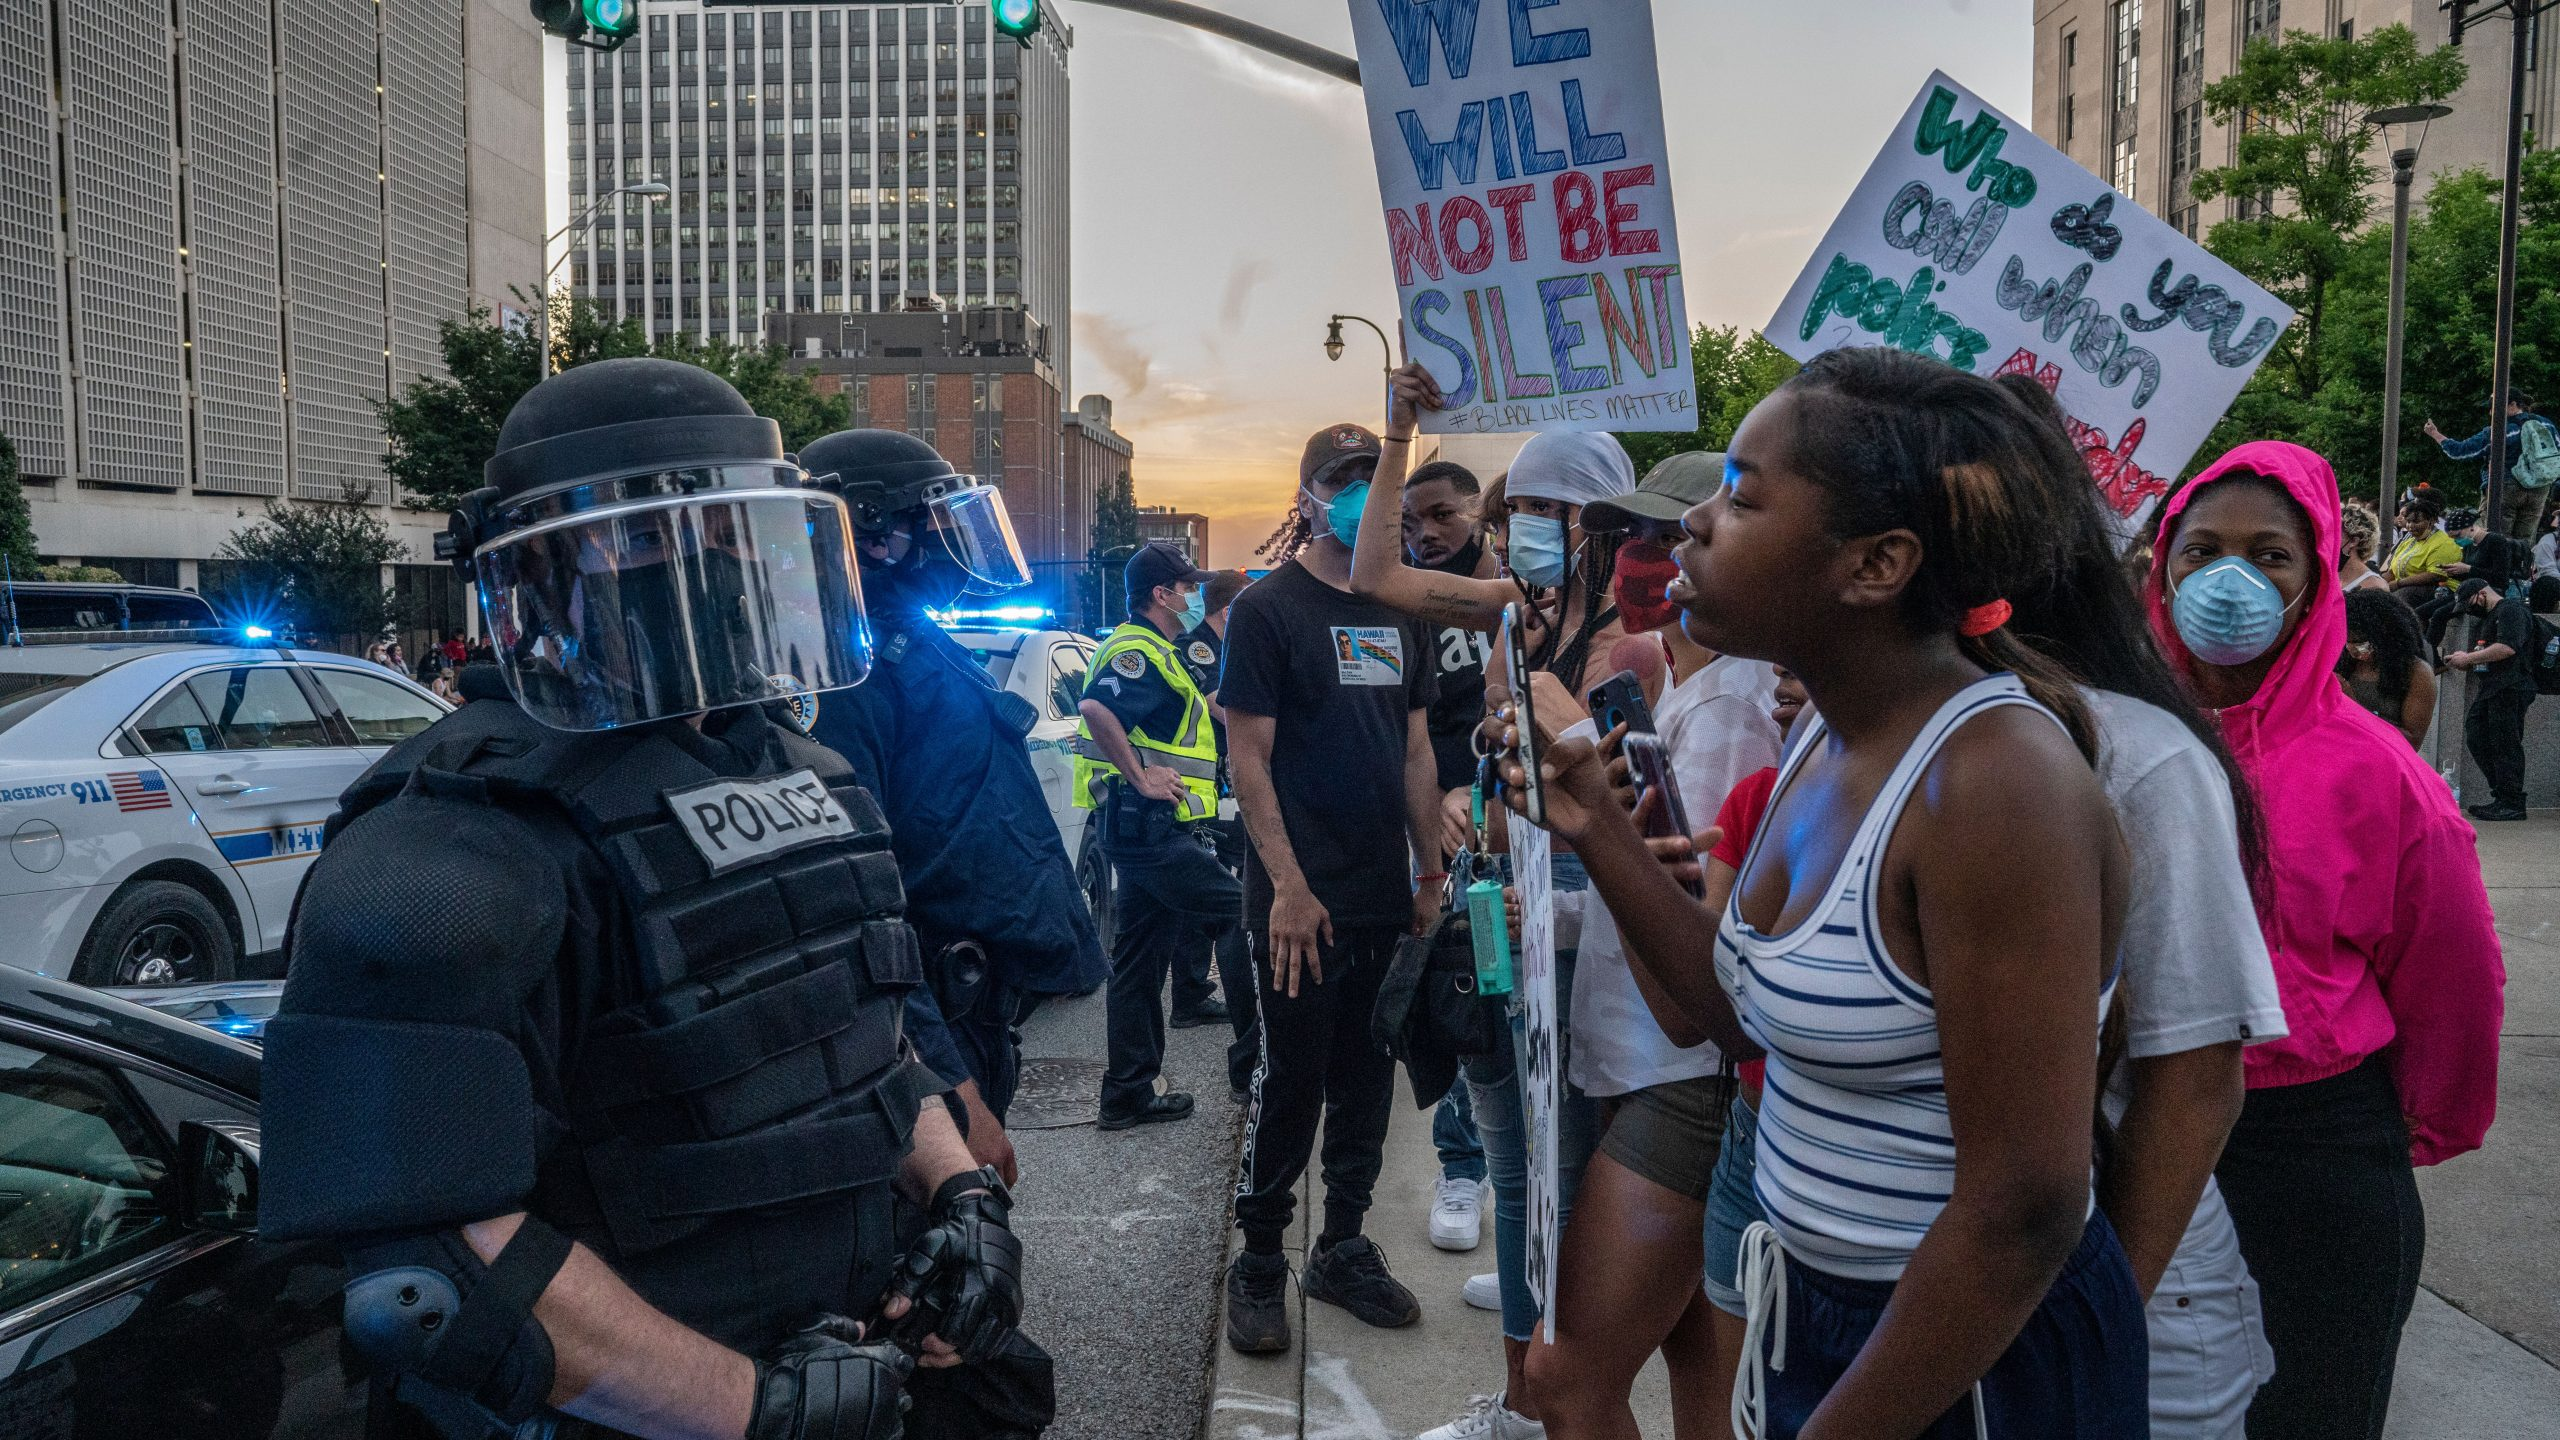 Nashville, Tenn., May 30 - Protestors face off against Metro Nashville police in riot gear near the Historic Nashville Courthouse.